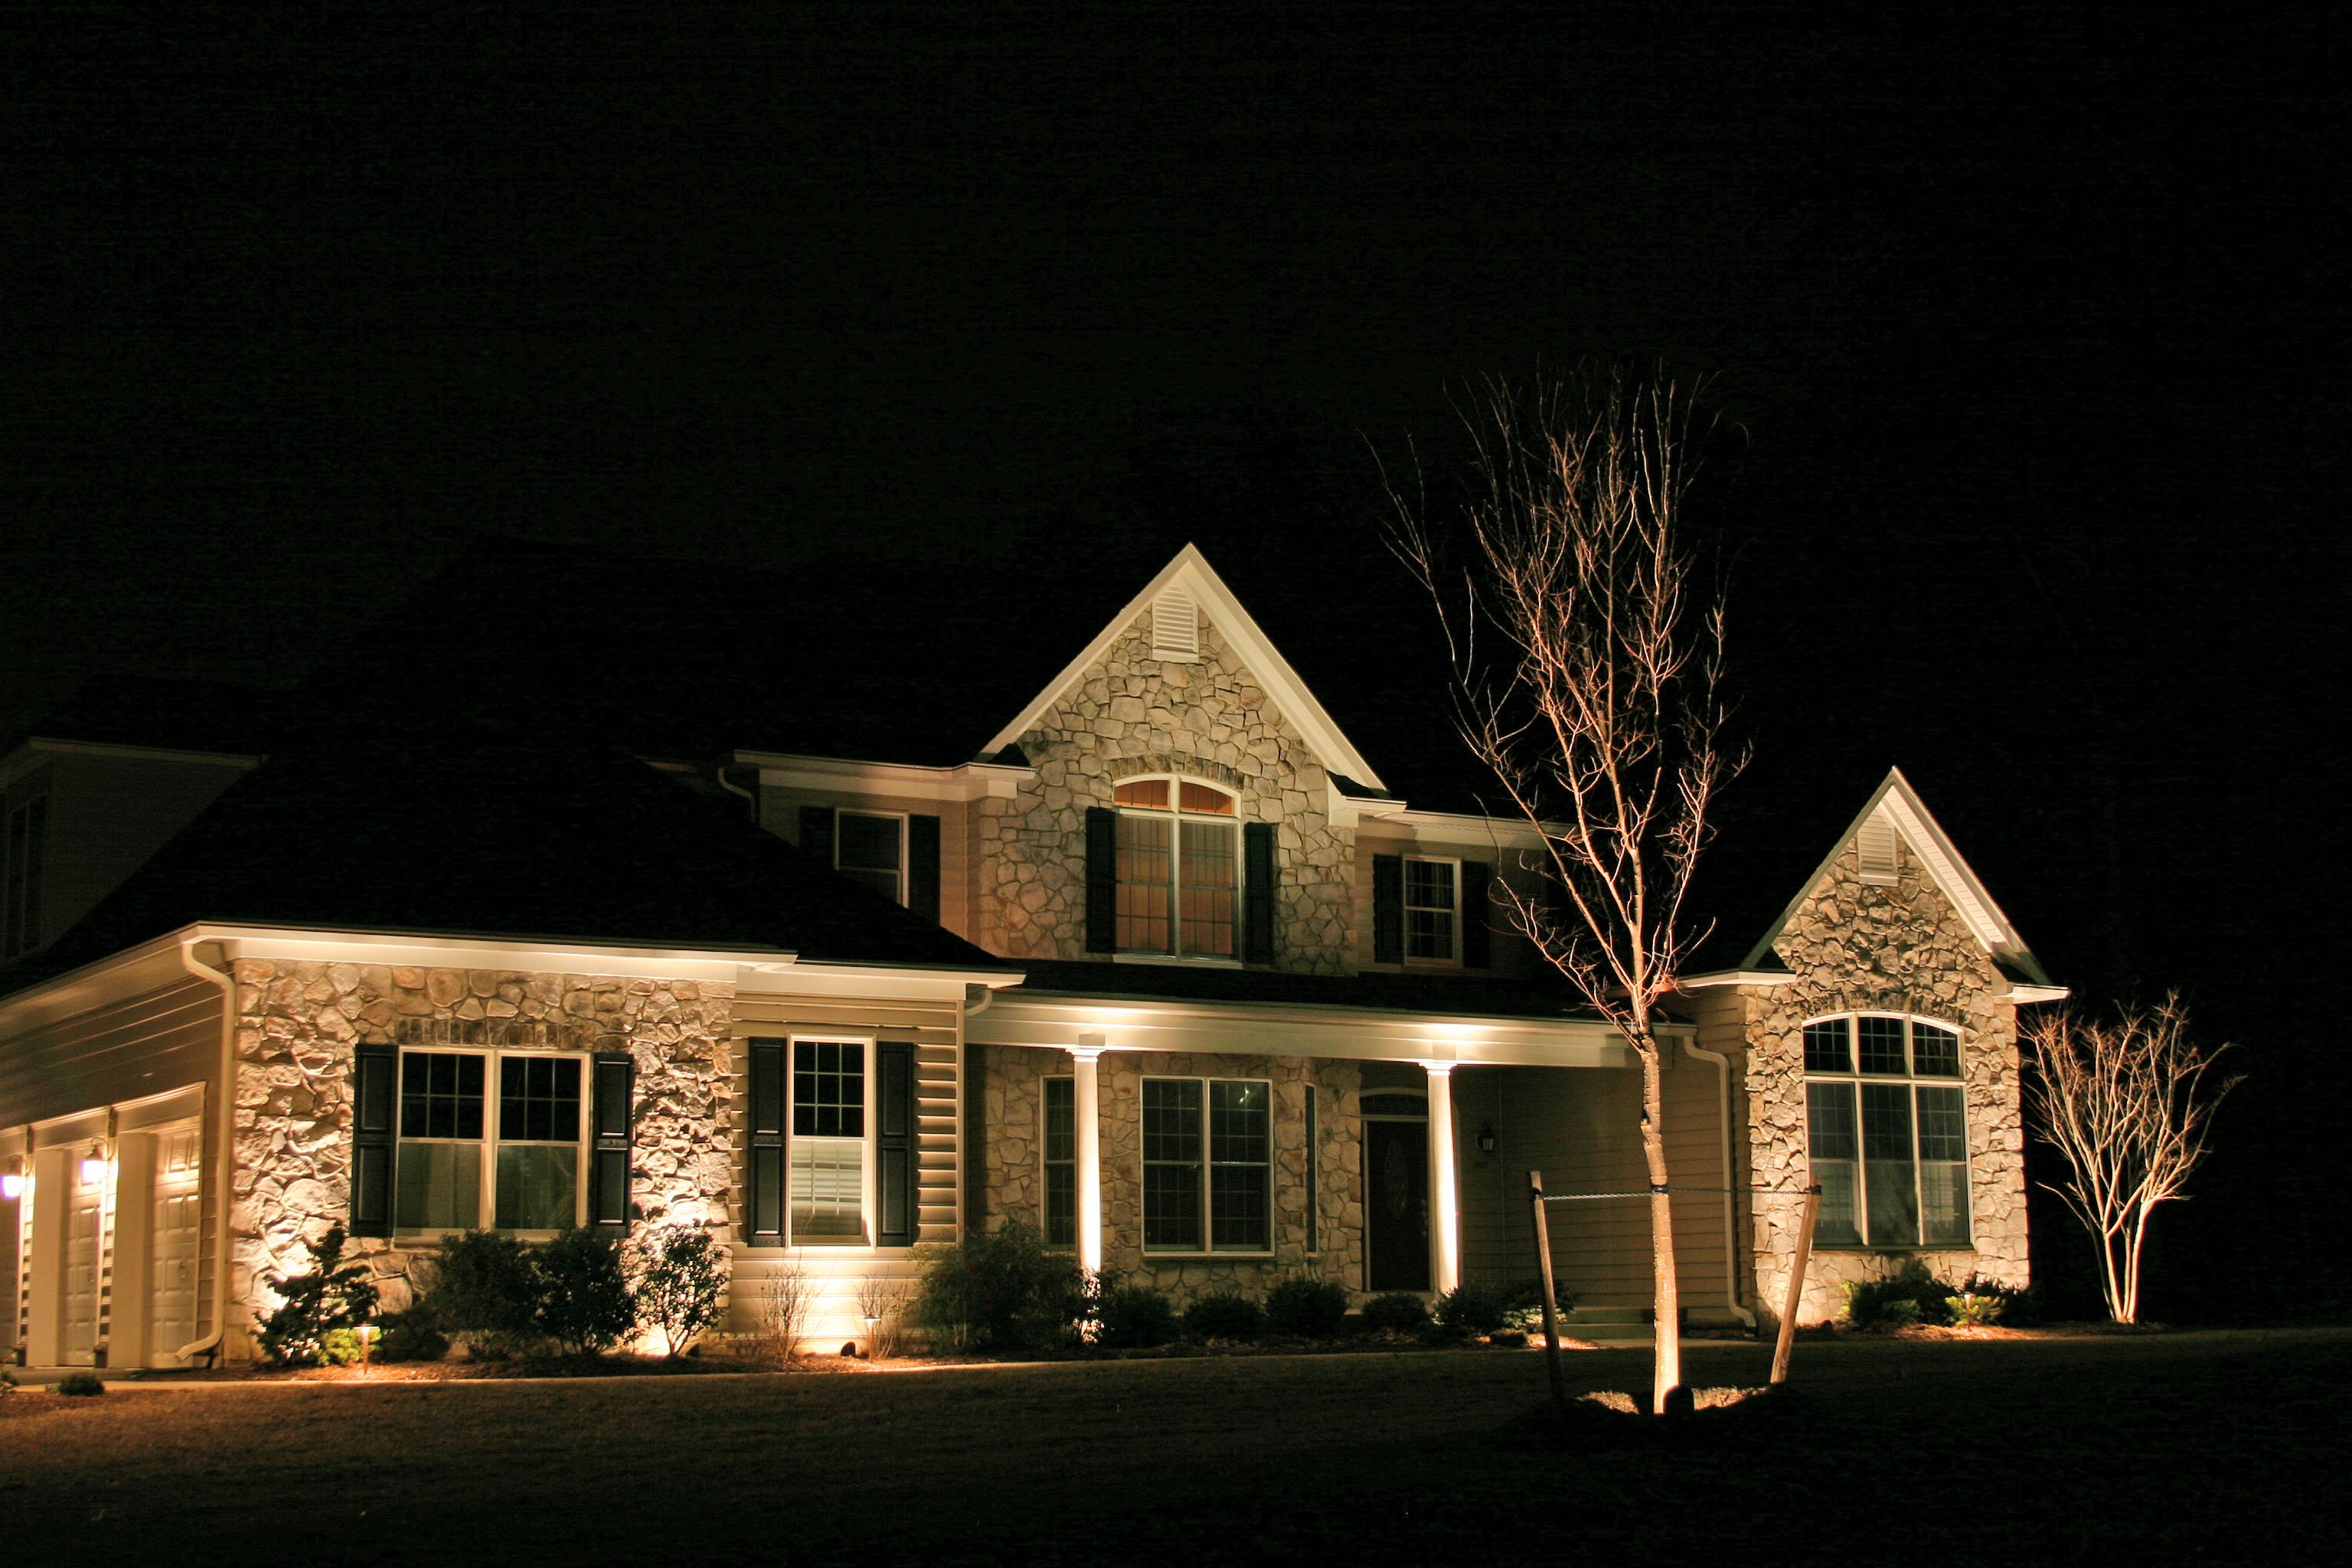 Kichler led outdoor landscape lighting ideas for my home kichler led outdoor landscape lighting workwithnaturefo